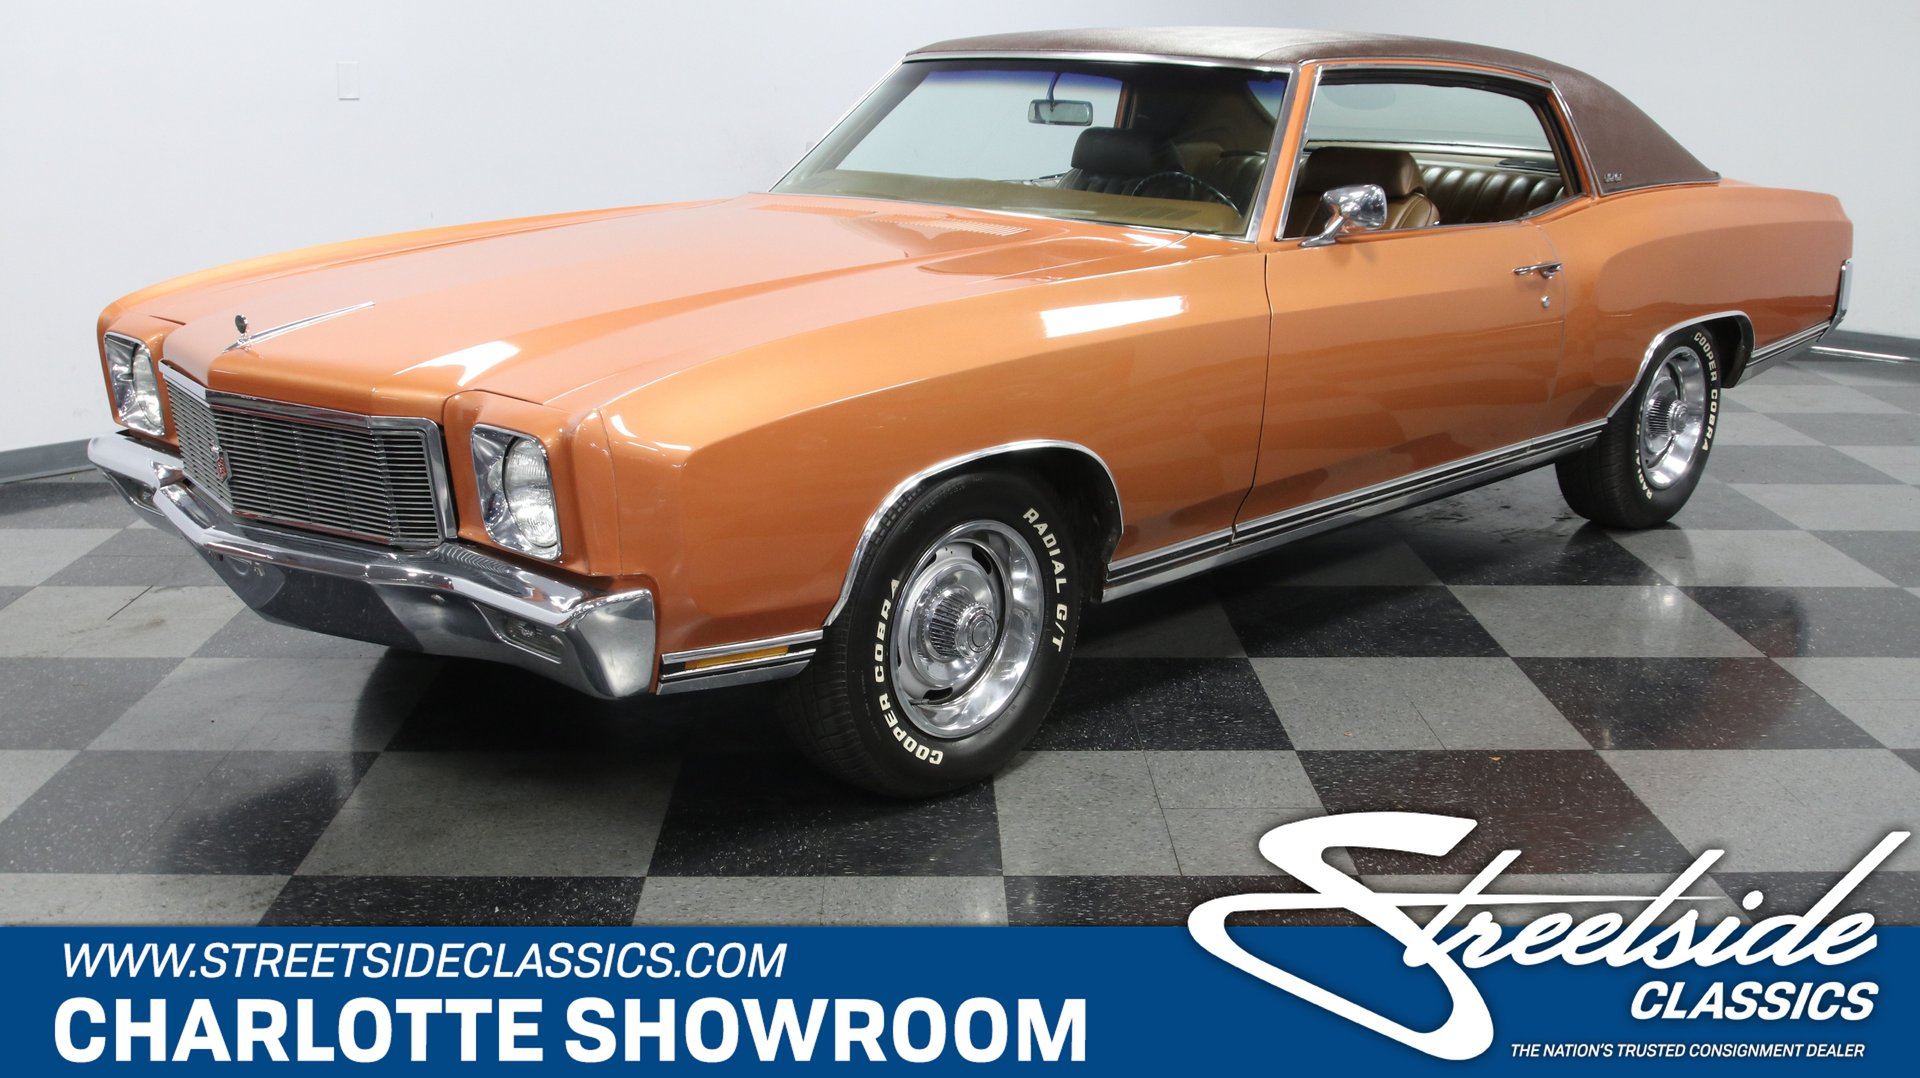 1971 Chevrolet Monte Carlo Streetside Classics The Nation S Trusted Classic Car Consignment Dealer